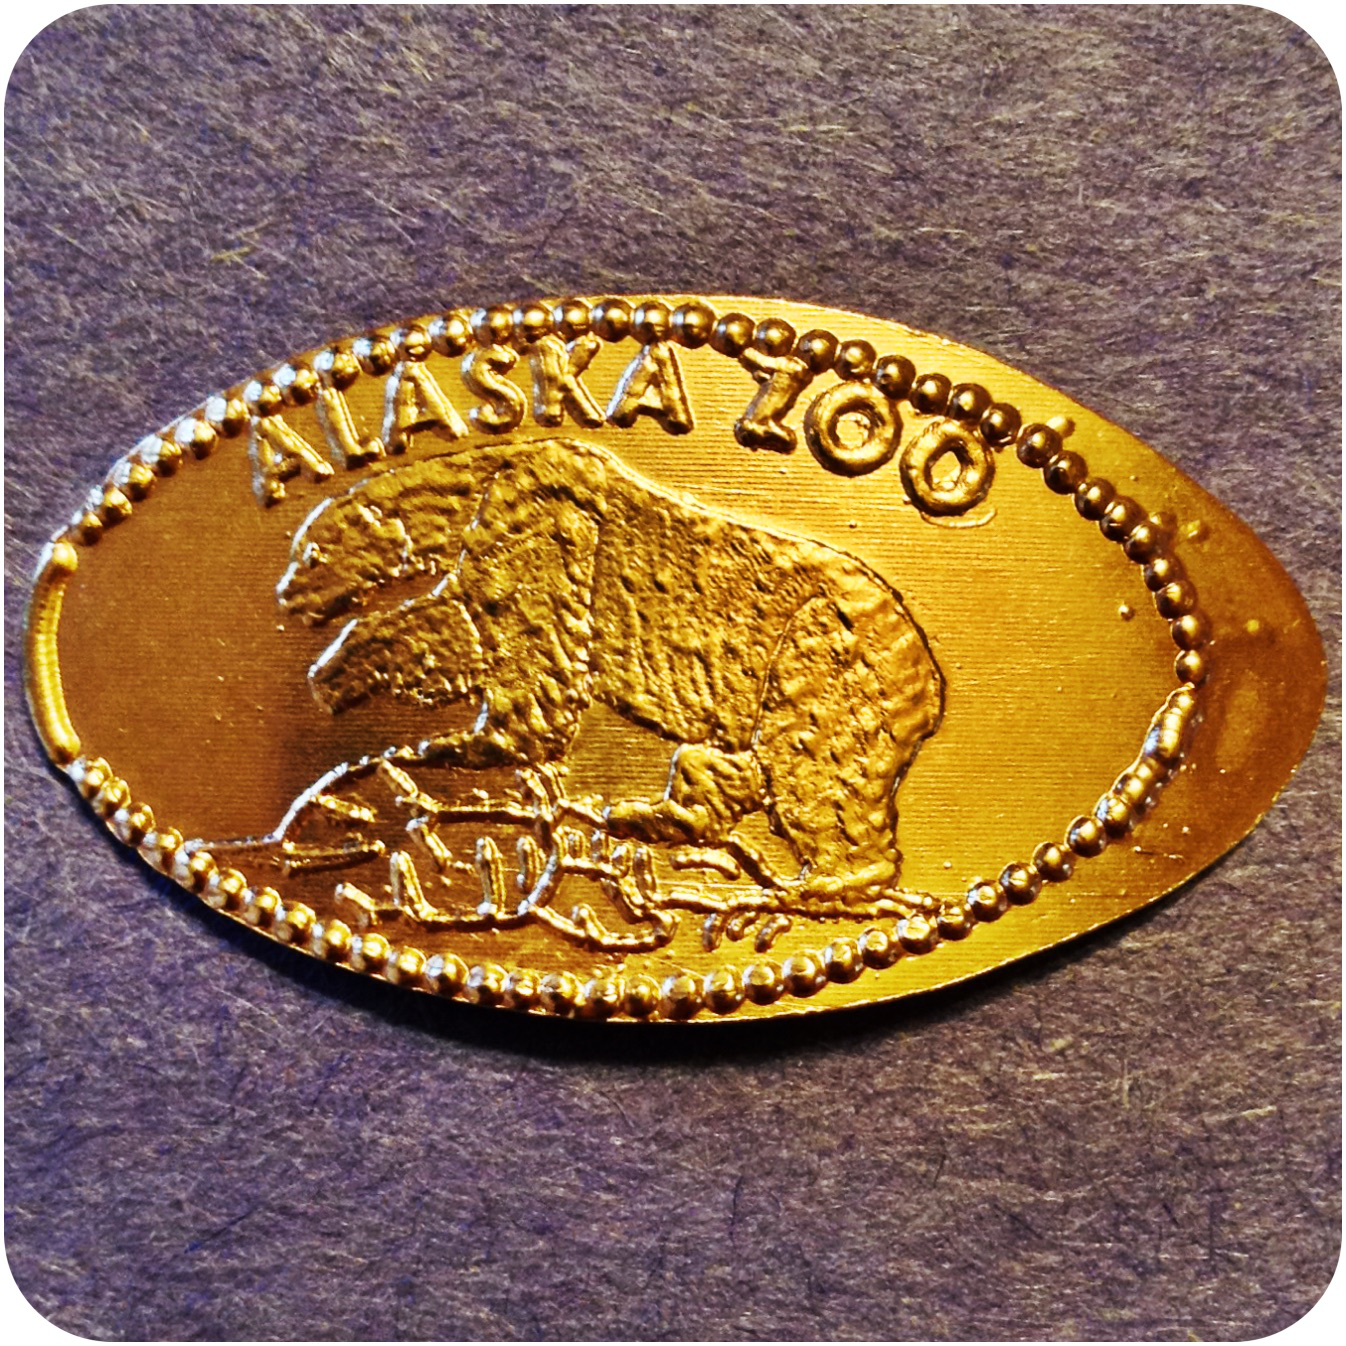 Brown Bear, Alaska Zoo, Anchorage, Alaska Elongated Smashed Pressed Copper Penny